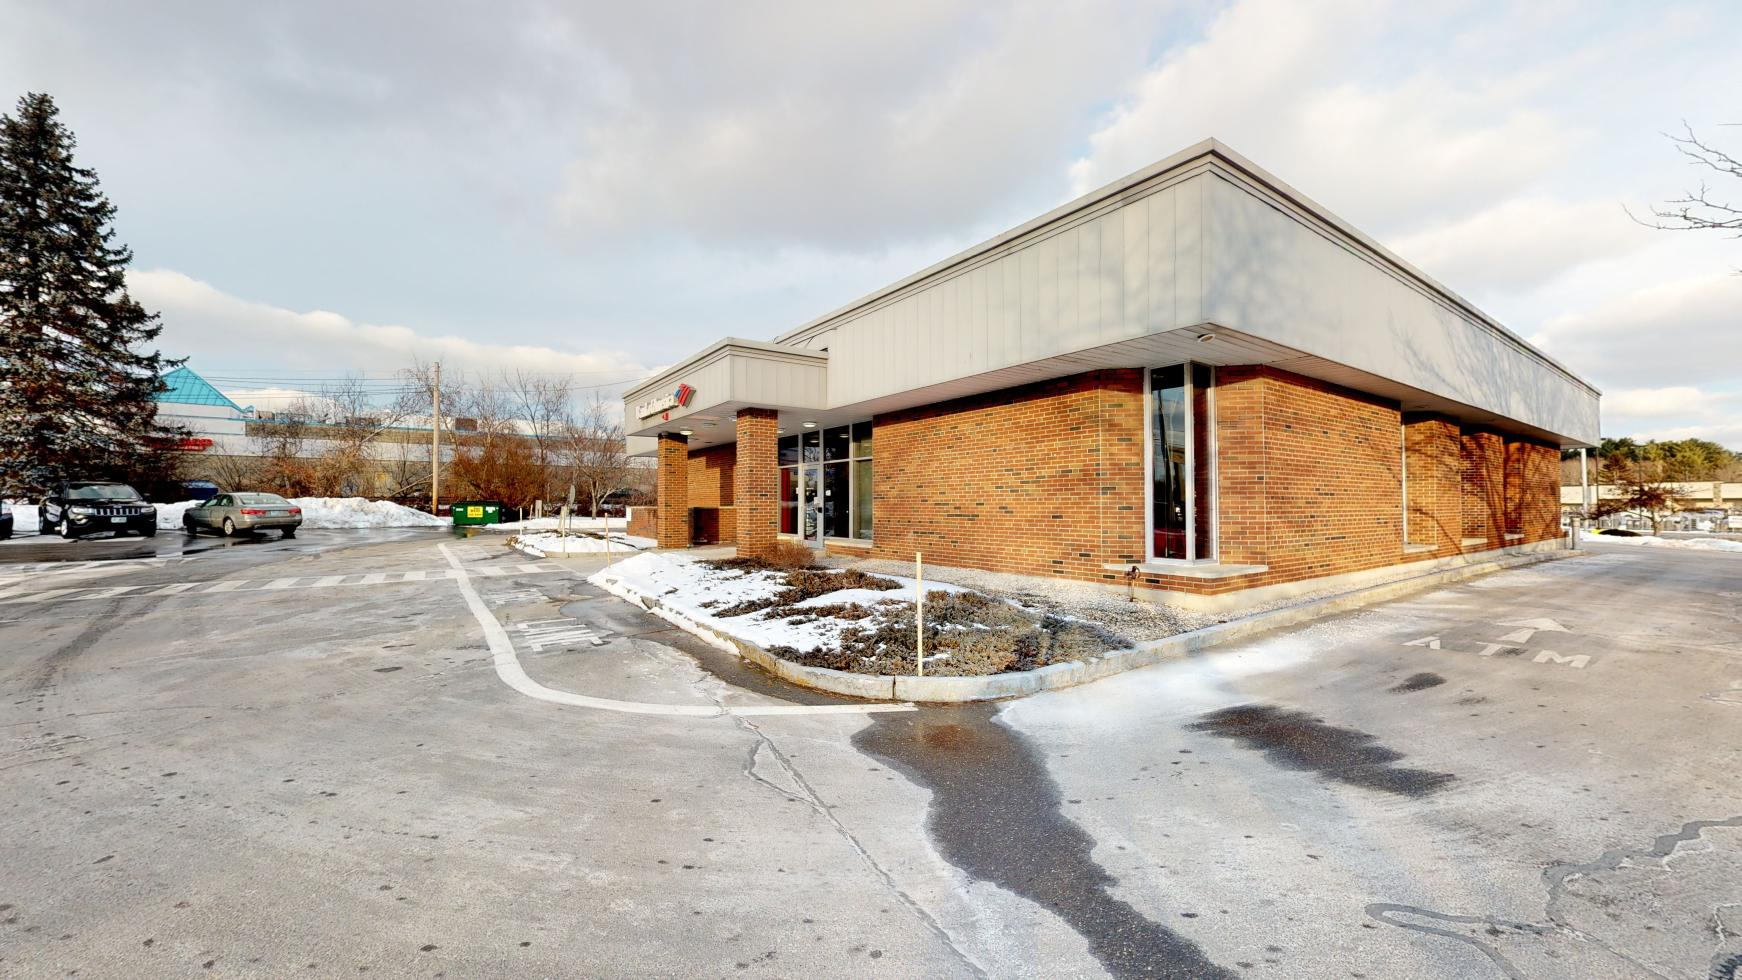 Bank of America financial center with drive-thru ATM | 57 Crystal Ave, Derry, NH 03038